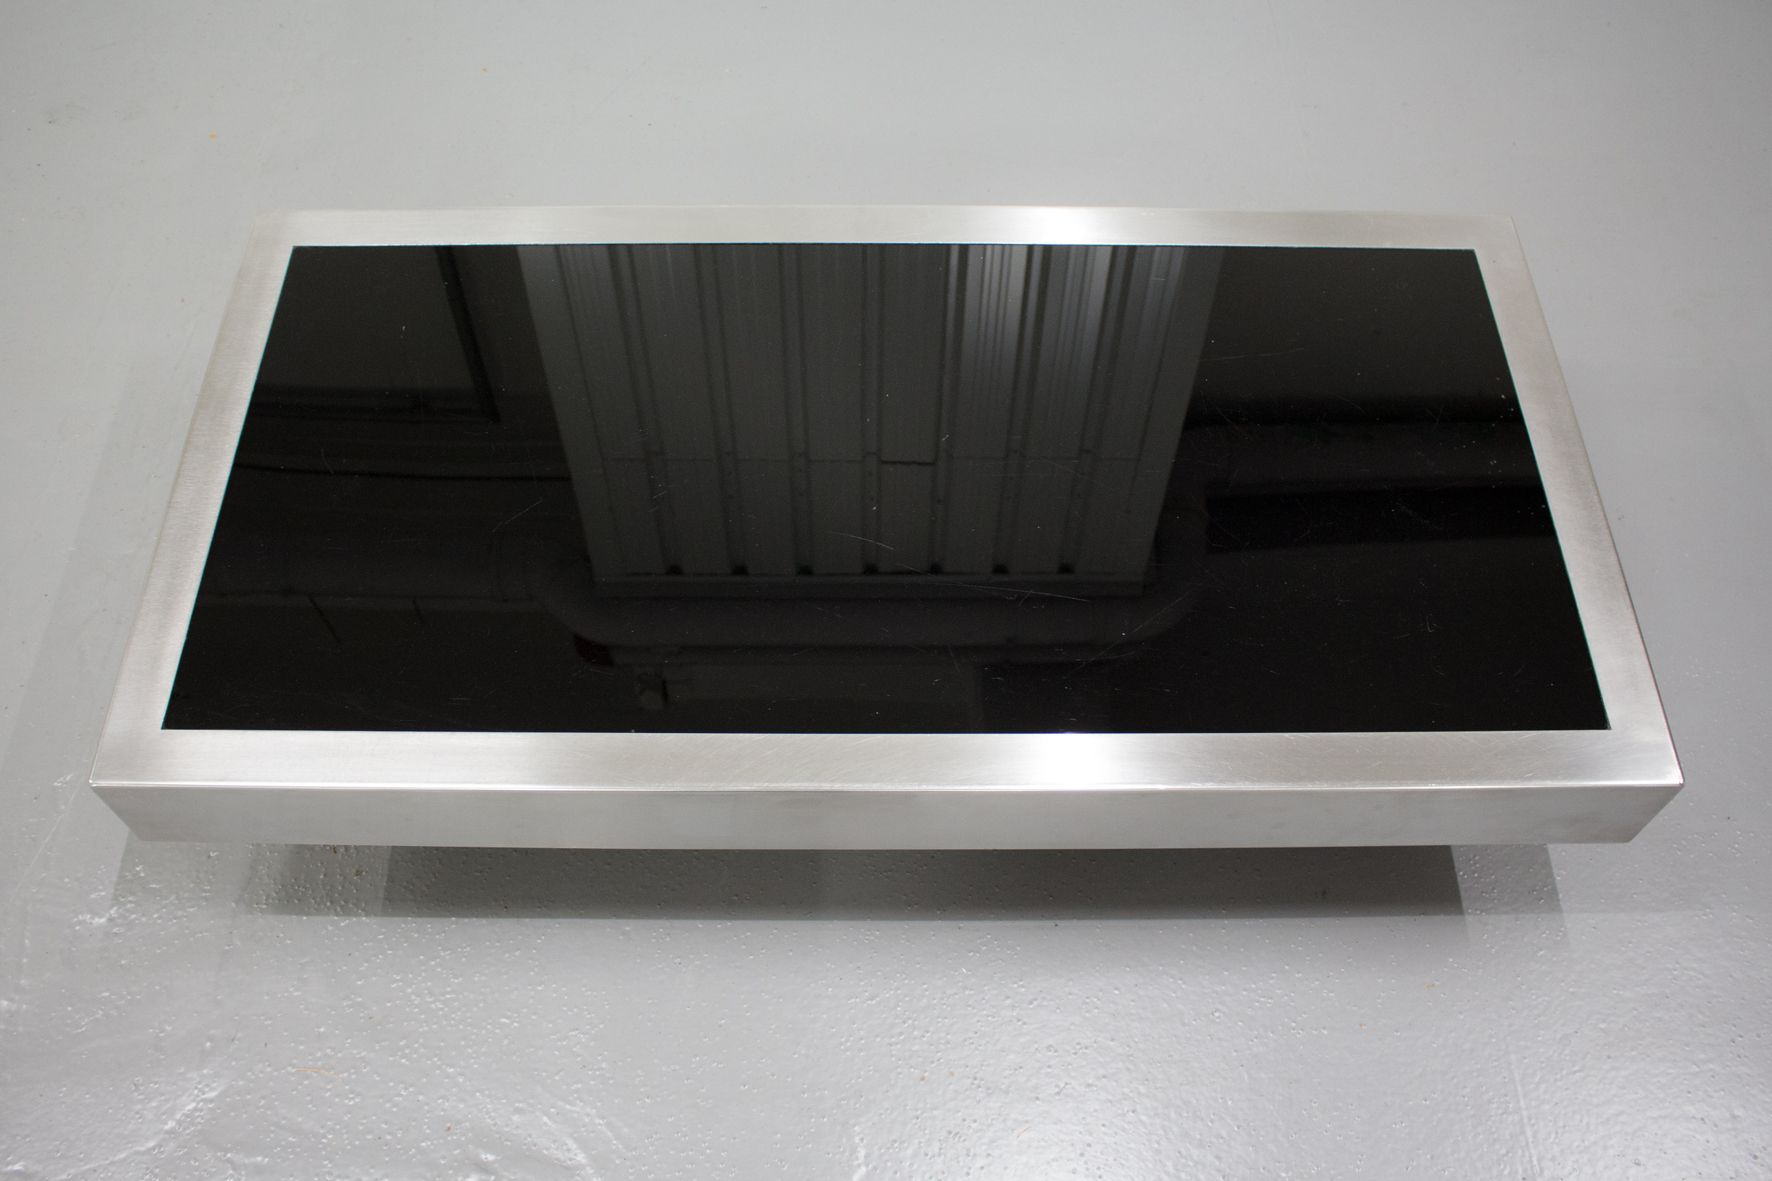 Black glass chrome coffee table by willy rizzo 1970s for Black and white glass coffee table